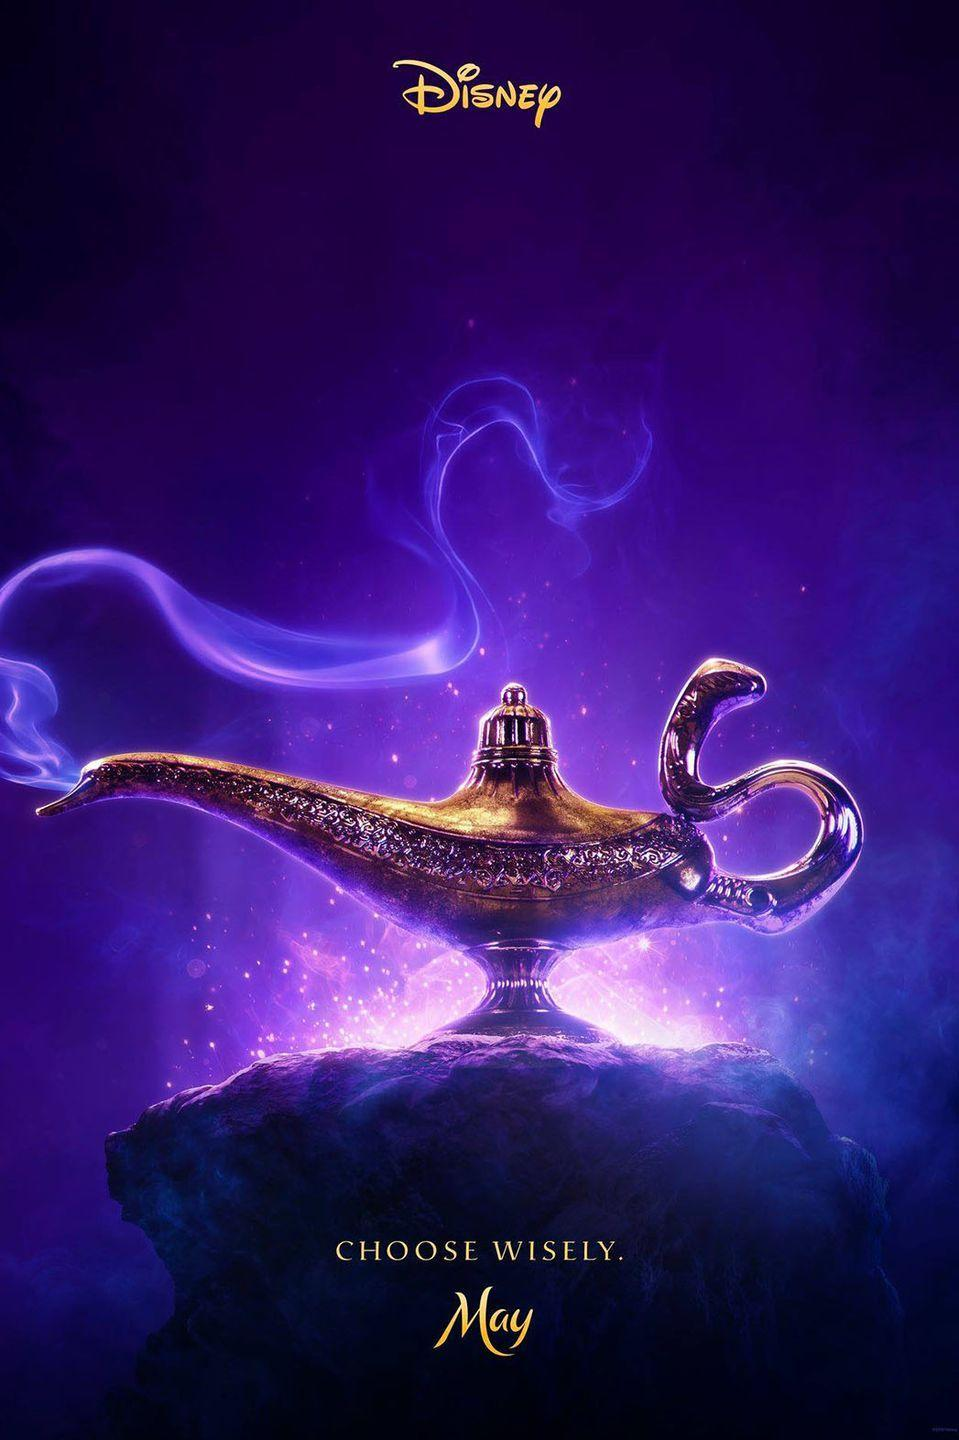 """<p>Disney originally announced a prequel called <em>Genies </em>that would delve into Genie's backstory, then scrapped the idea in favor of <a href=""""https://www.seventeen.com/celebrity/movies-tv/news/a43236/disneys-aladdin-is-officially-getting-a-live-action-remake-with-a-key-change-that-might-make-you-nervous/"""" rel=""""nofollow noopener"""" target=""""_blank"""" data-ylk=""""slk:moving forward with the original Aladdin story"""" class=""""link rapid-noclick-resp"""">moving forward with the original <em>Aladdin</em> story</a>. Guy Ritchie directed the film and Mena Massoud starred as Aladdin. Will Smith plays the iconic Genie while <em>Lemonade Mouth </em>and <em>Power Rangers </em>star Naomi Scott is Jasmine. </p>"""